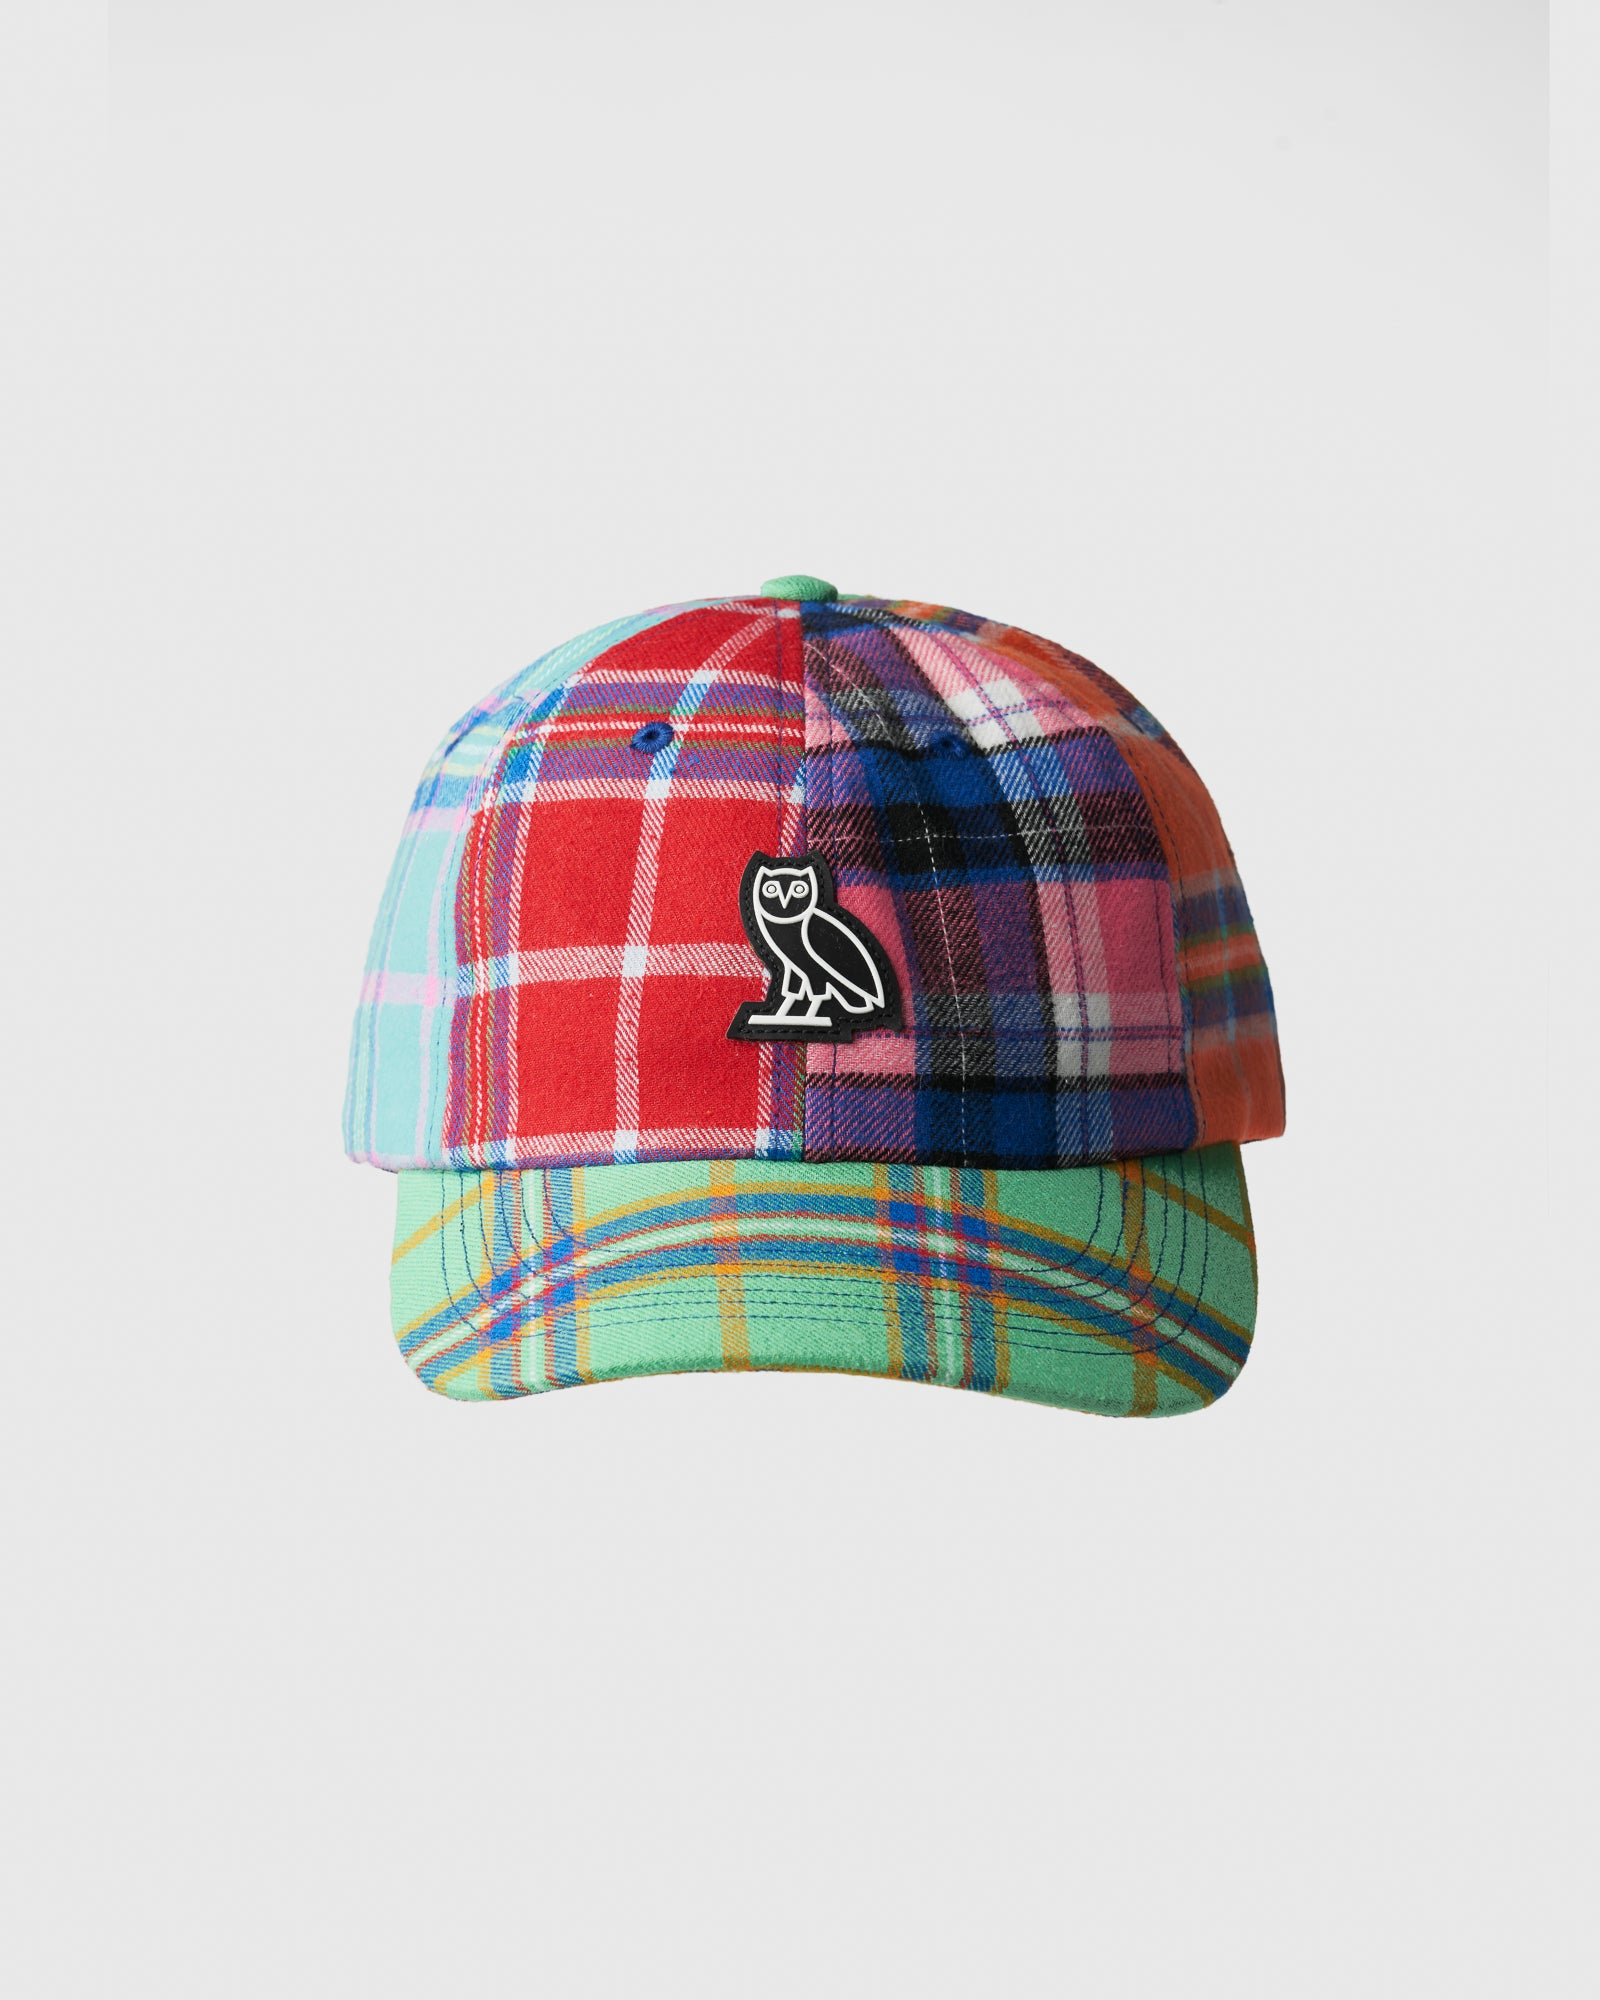 COLOUR BLOCK POM POM PLAID SPORT CAP - MULTI COLOUR IMAGE #1